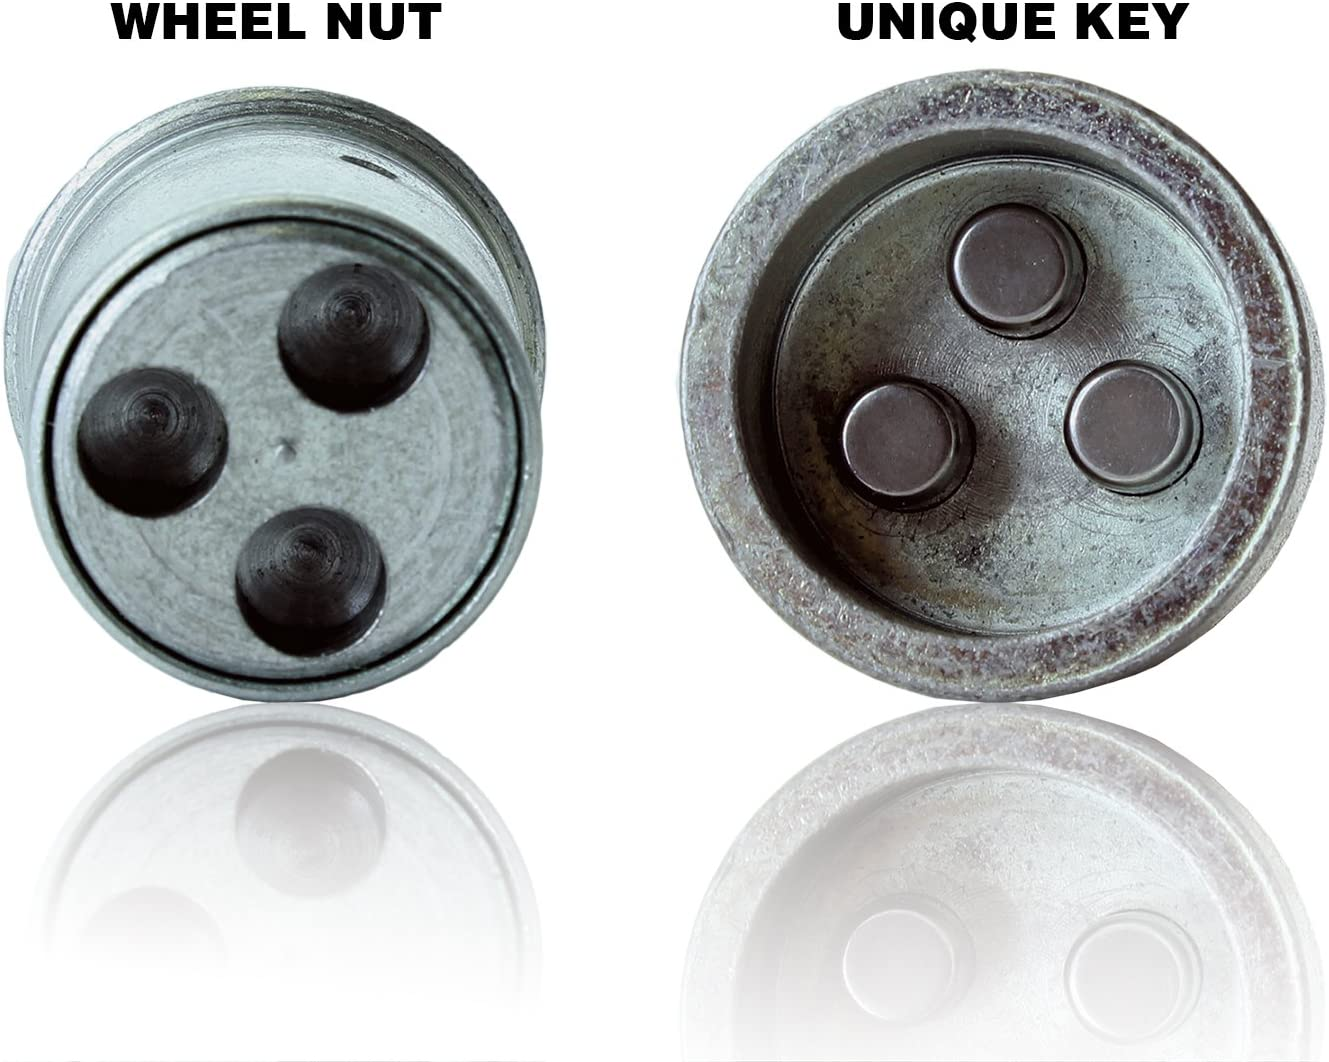 Butzi 12x1.5 Chrome Anti Theft Locking Wheel Bolt Nuts /& 2 Keys for Kia Sportage